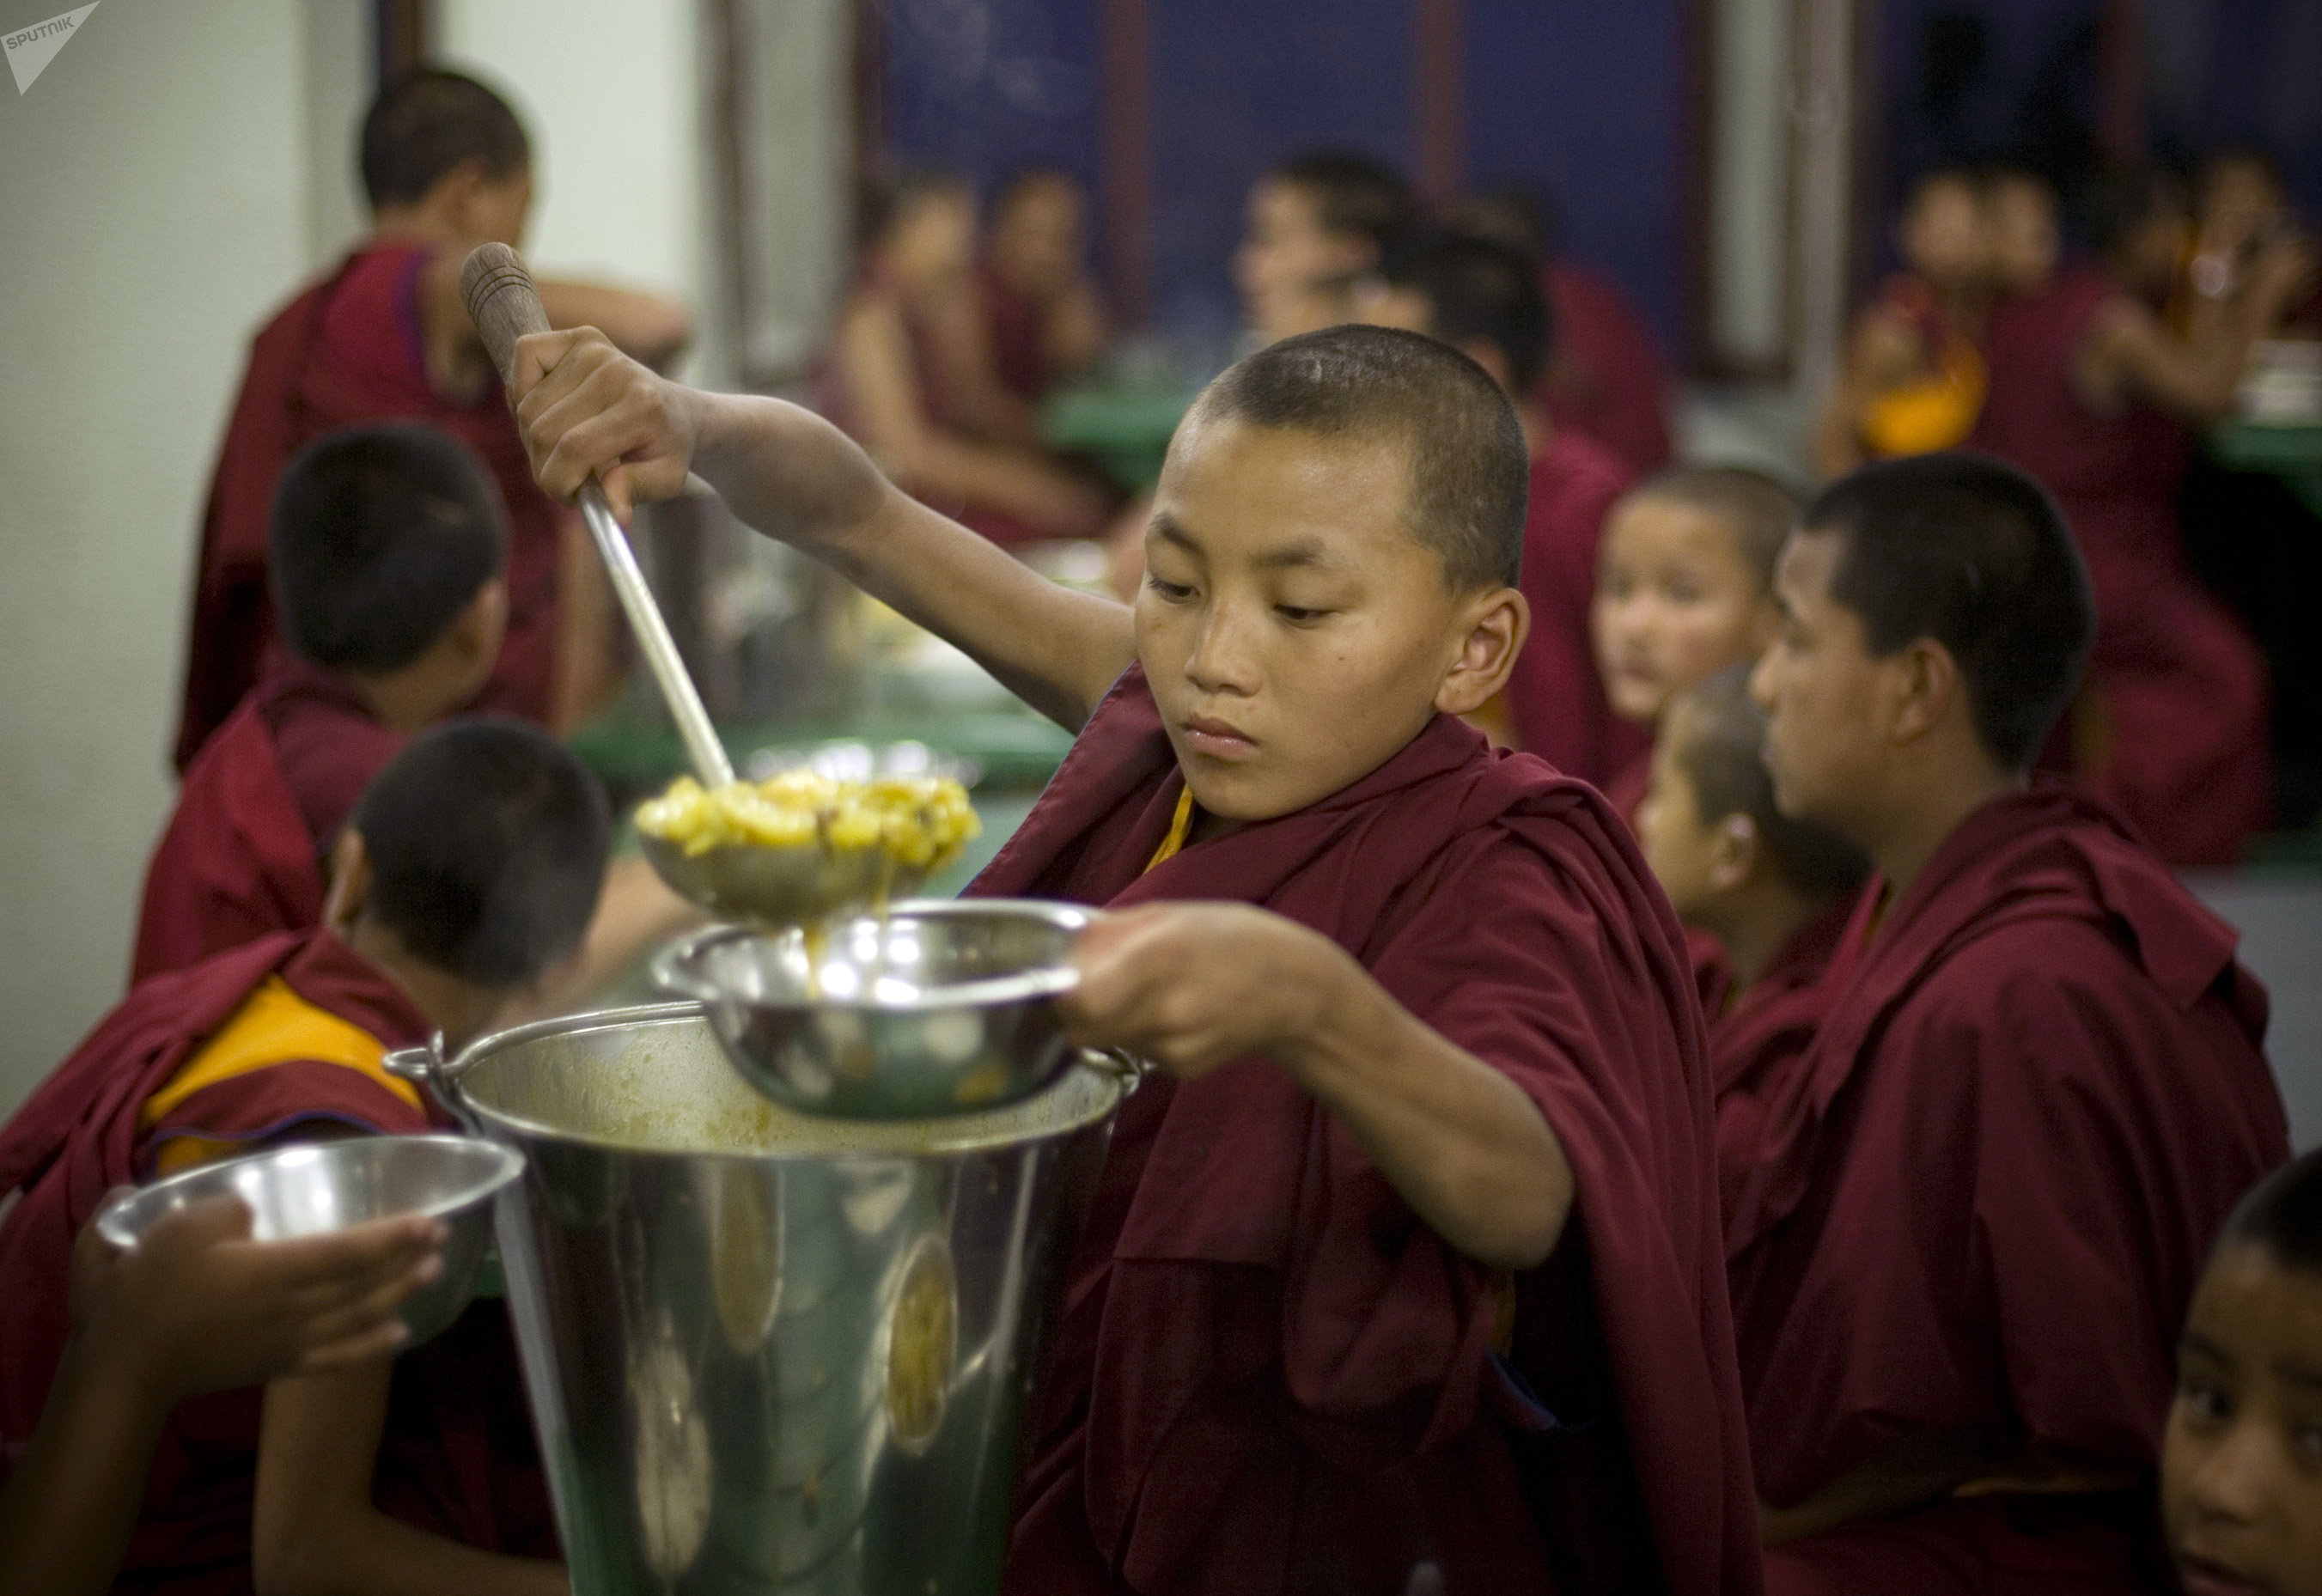 A young Buddhist monk serves food during dinner at the Kopan Monastery in Katmandu, Nepal. (File)